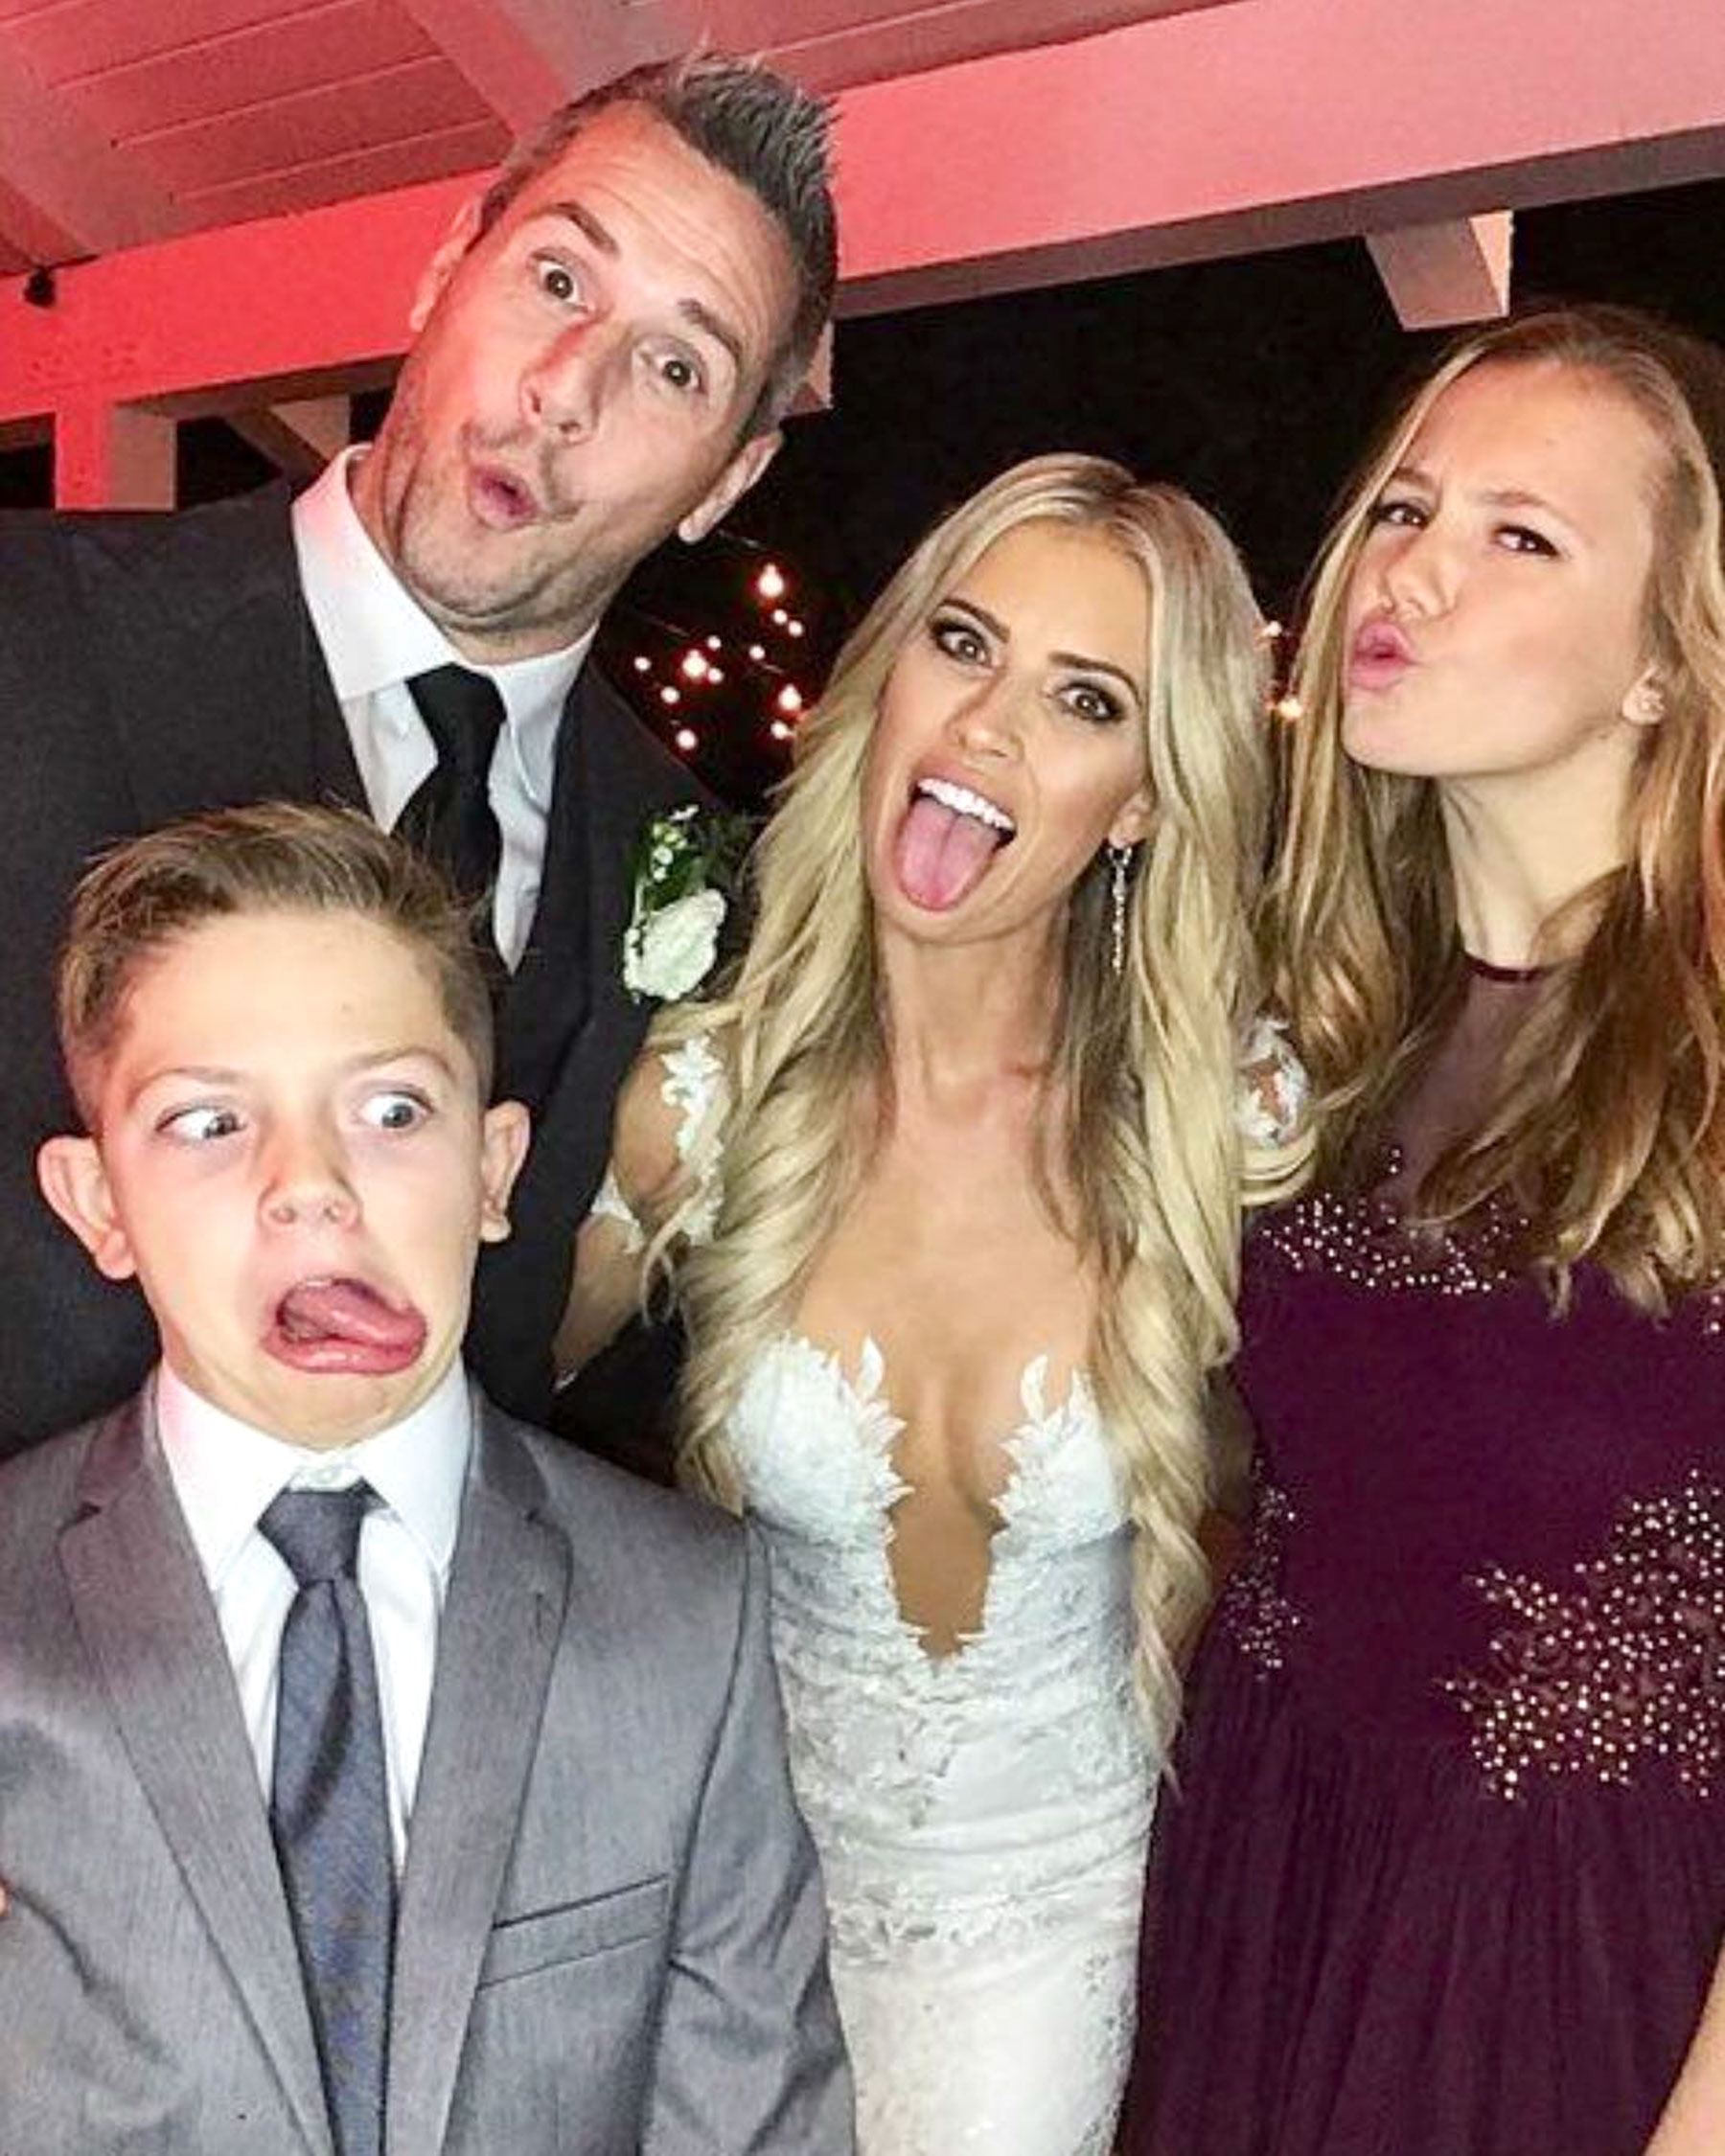 Ex-husband of Louise Anstead, Ant Anstead with new wife Christina and kids Amelie and Archie